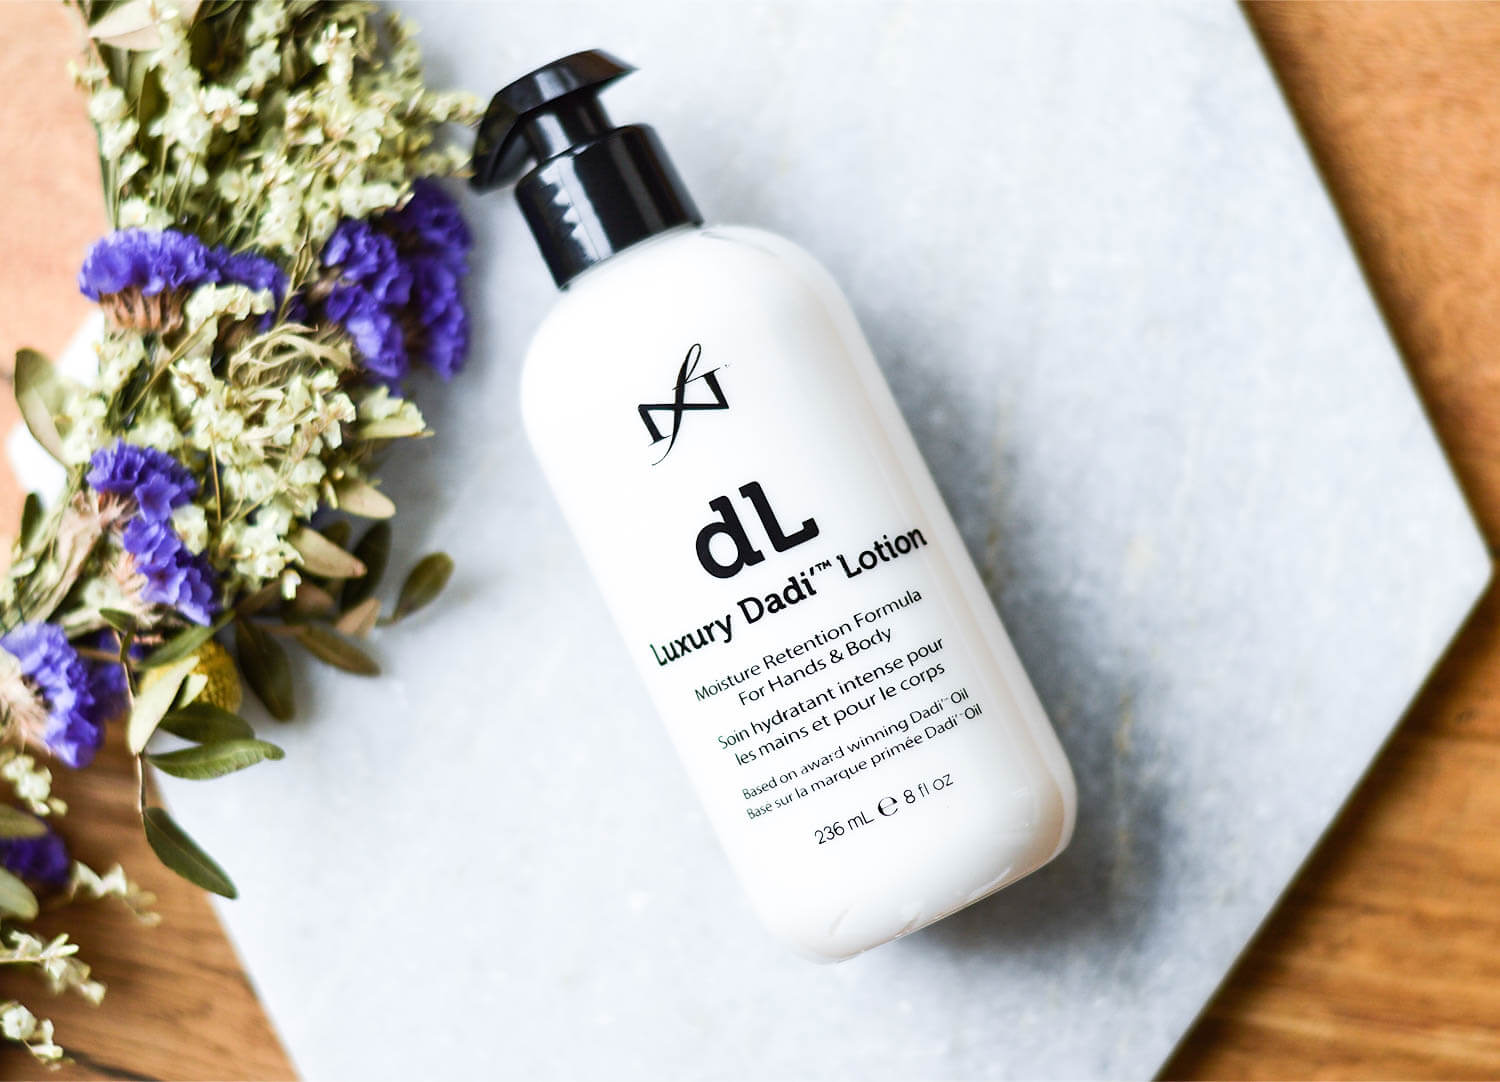 Kationette-lifestyleblog-beauty-test-review-new-bloggerclub-bodylotion